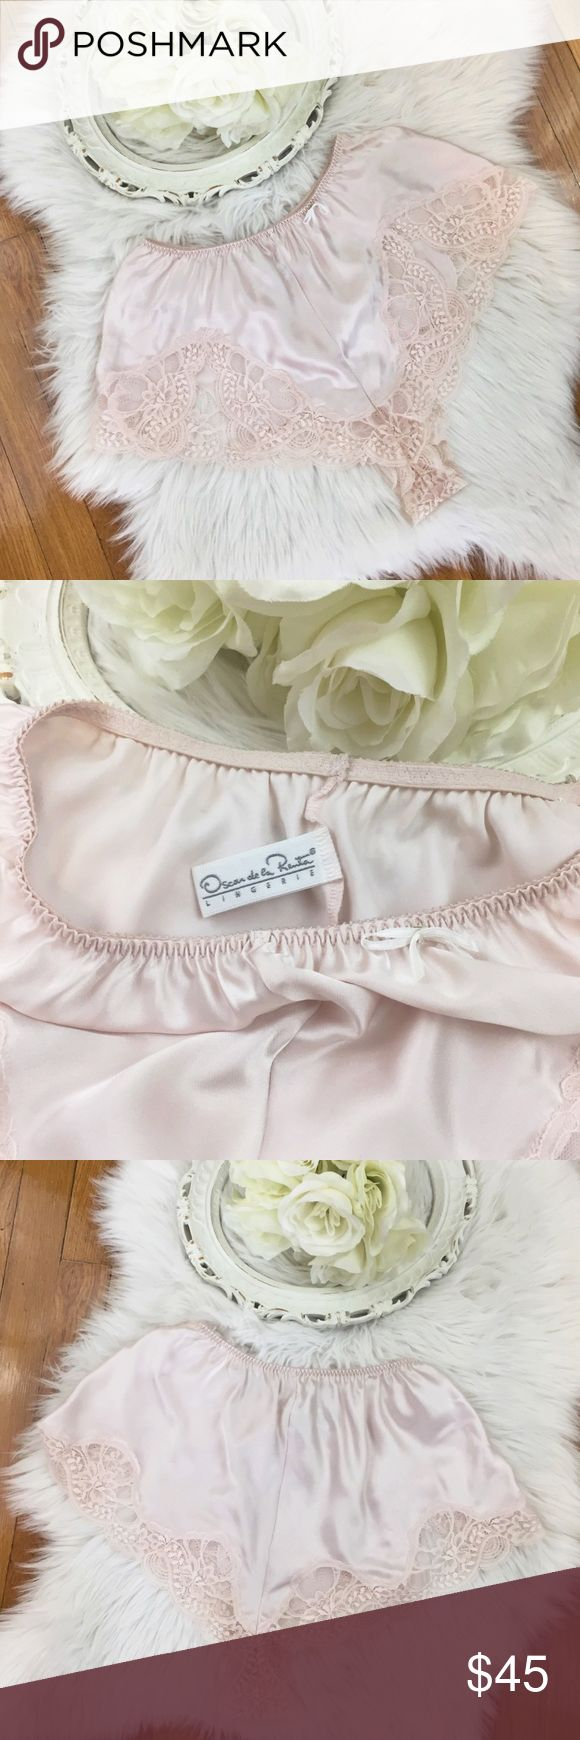 🌹Vtg Oscar de la Renta Sleep Shorts S🌹 Vintage 1980s OSCAR de la RENTA pale pink silky satin lingerie/loungewear tap shorts. Delicate and angelic matching lace detail on high cut hem. Slits in lace at the bottom. Perfect 10/10 condition. Marked a size 5 but would fit a SMALL best 💕 Vintage Intimates & Sleepwear